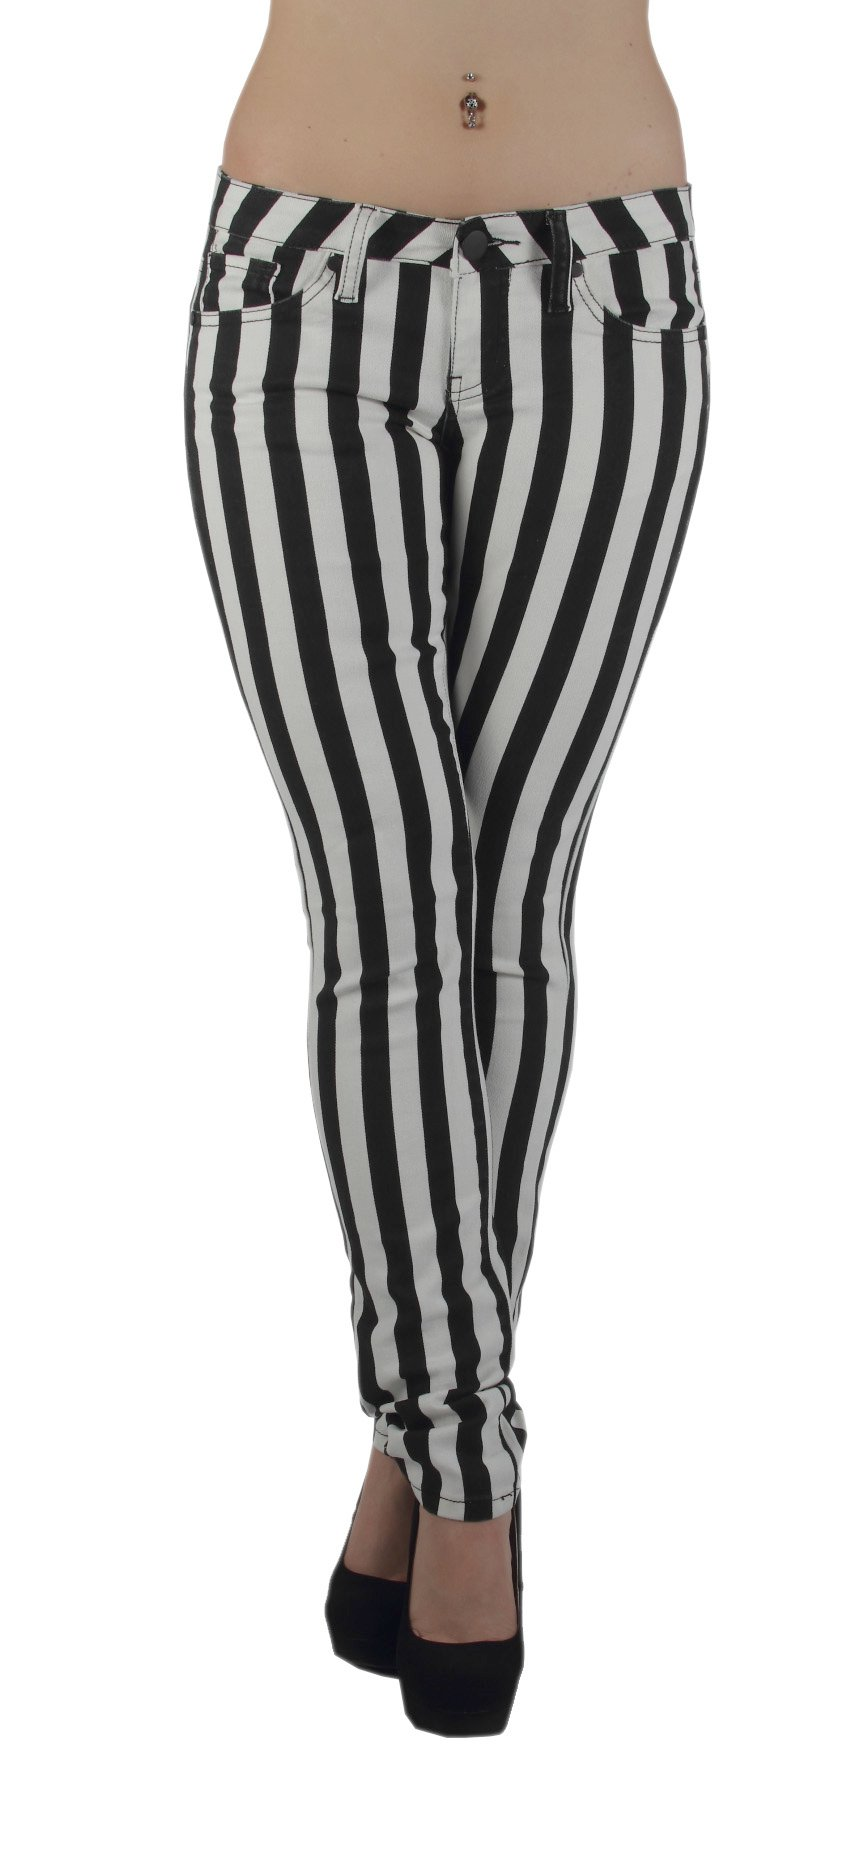 Fashion2Love Women's Plus Size Black & White Striped 5 Pockets Classic Skinny Jeans (13/14)